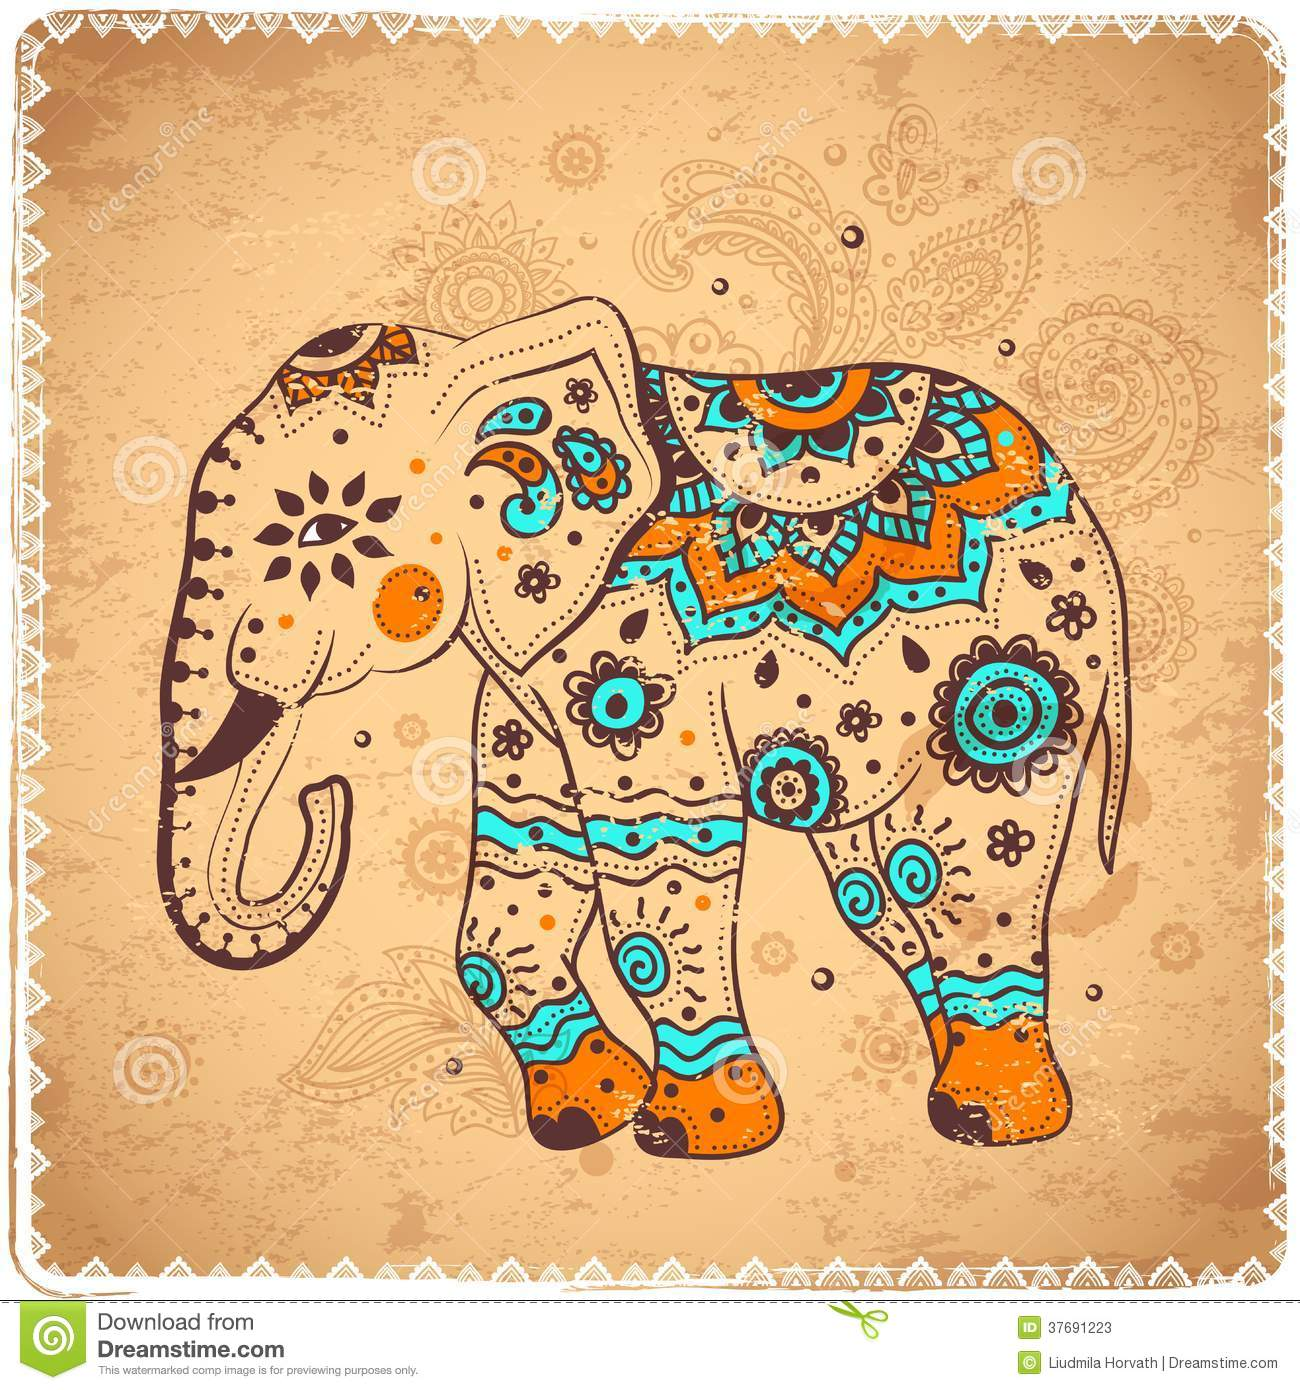 Vintage elephant illustration cand be used as a greeting card Vintage Elephant Illustration